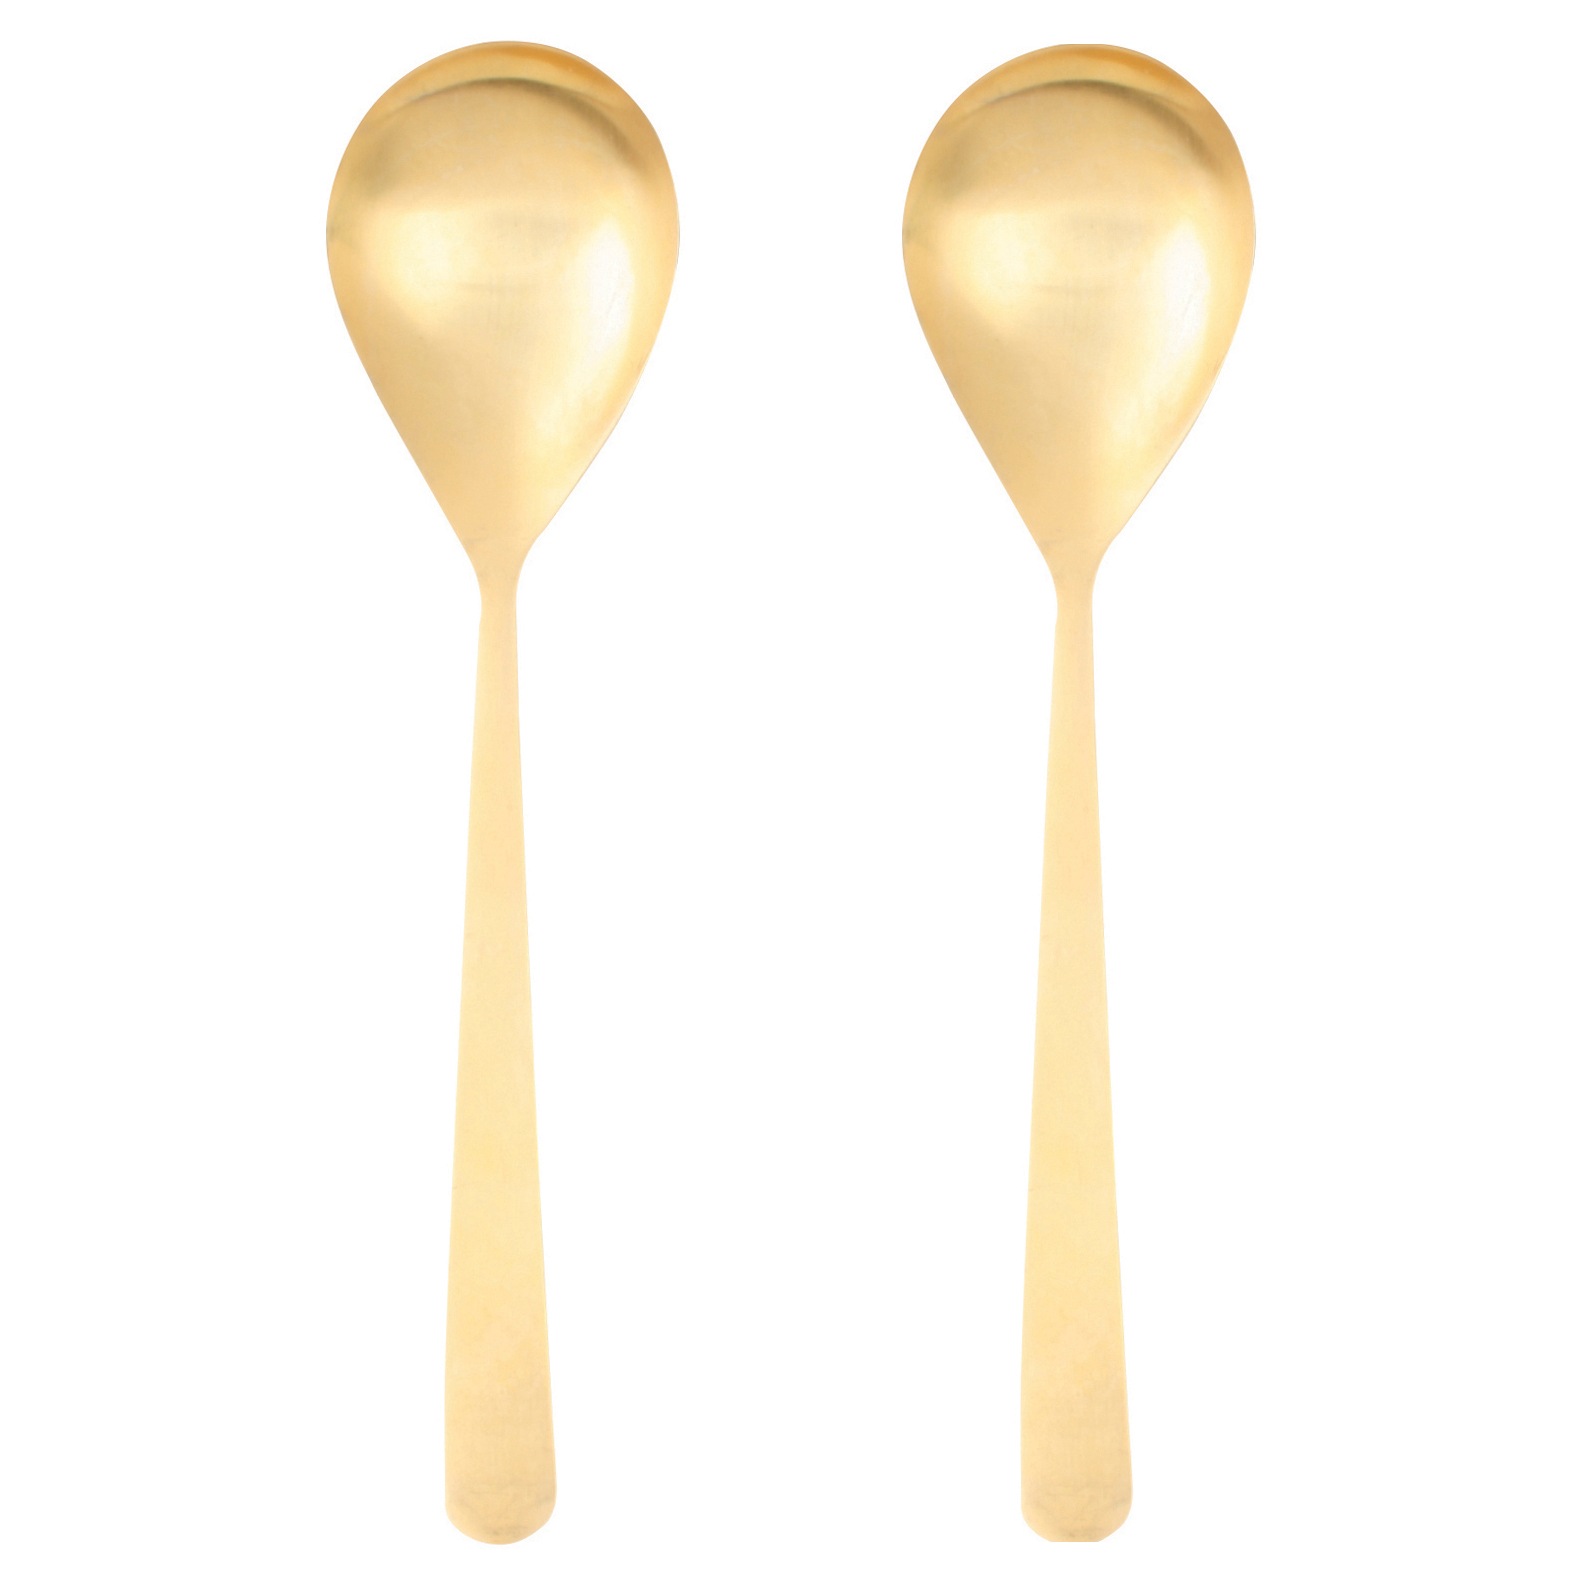 Oslo Matte Gold Serving Spoons - Pair